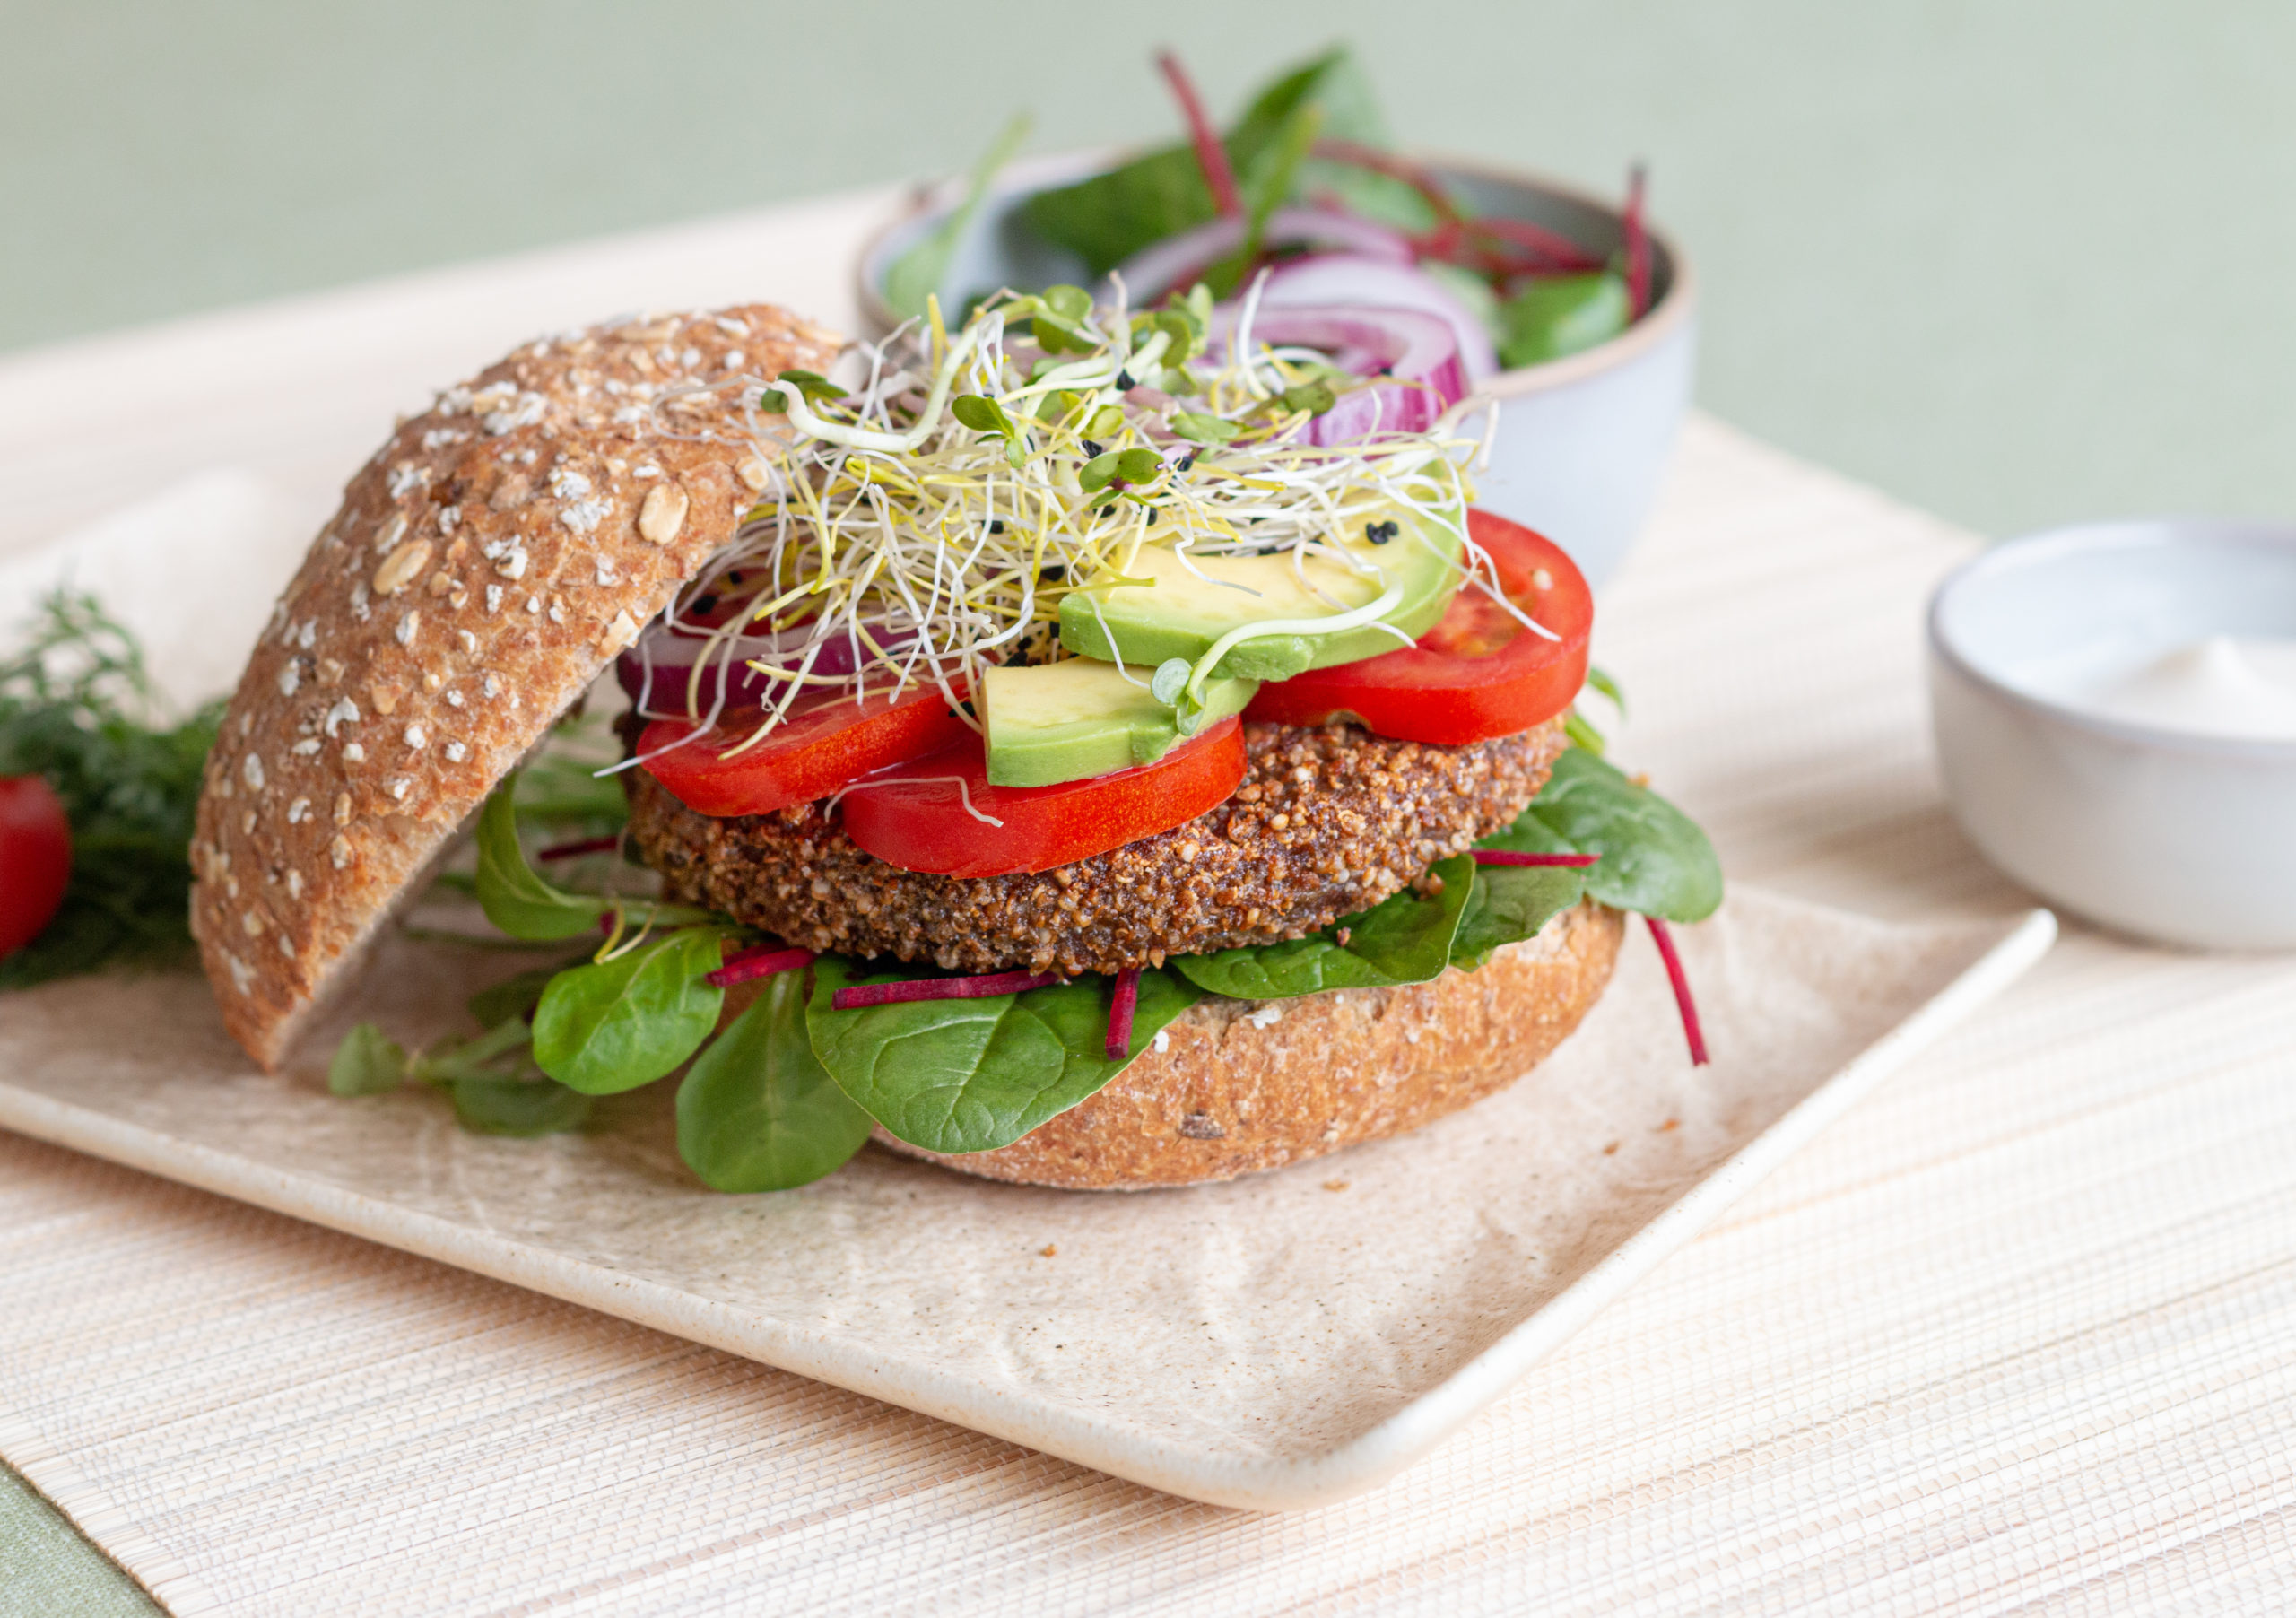 Quinoa-Based Vegan Burger Patty